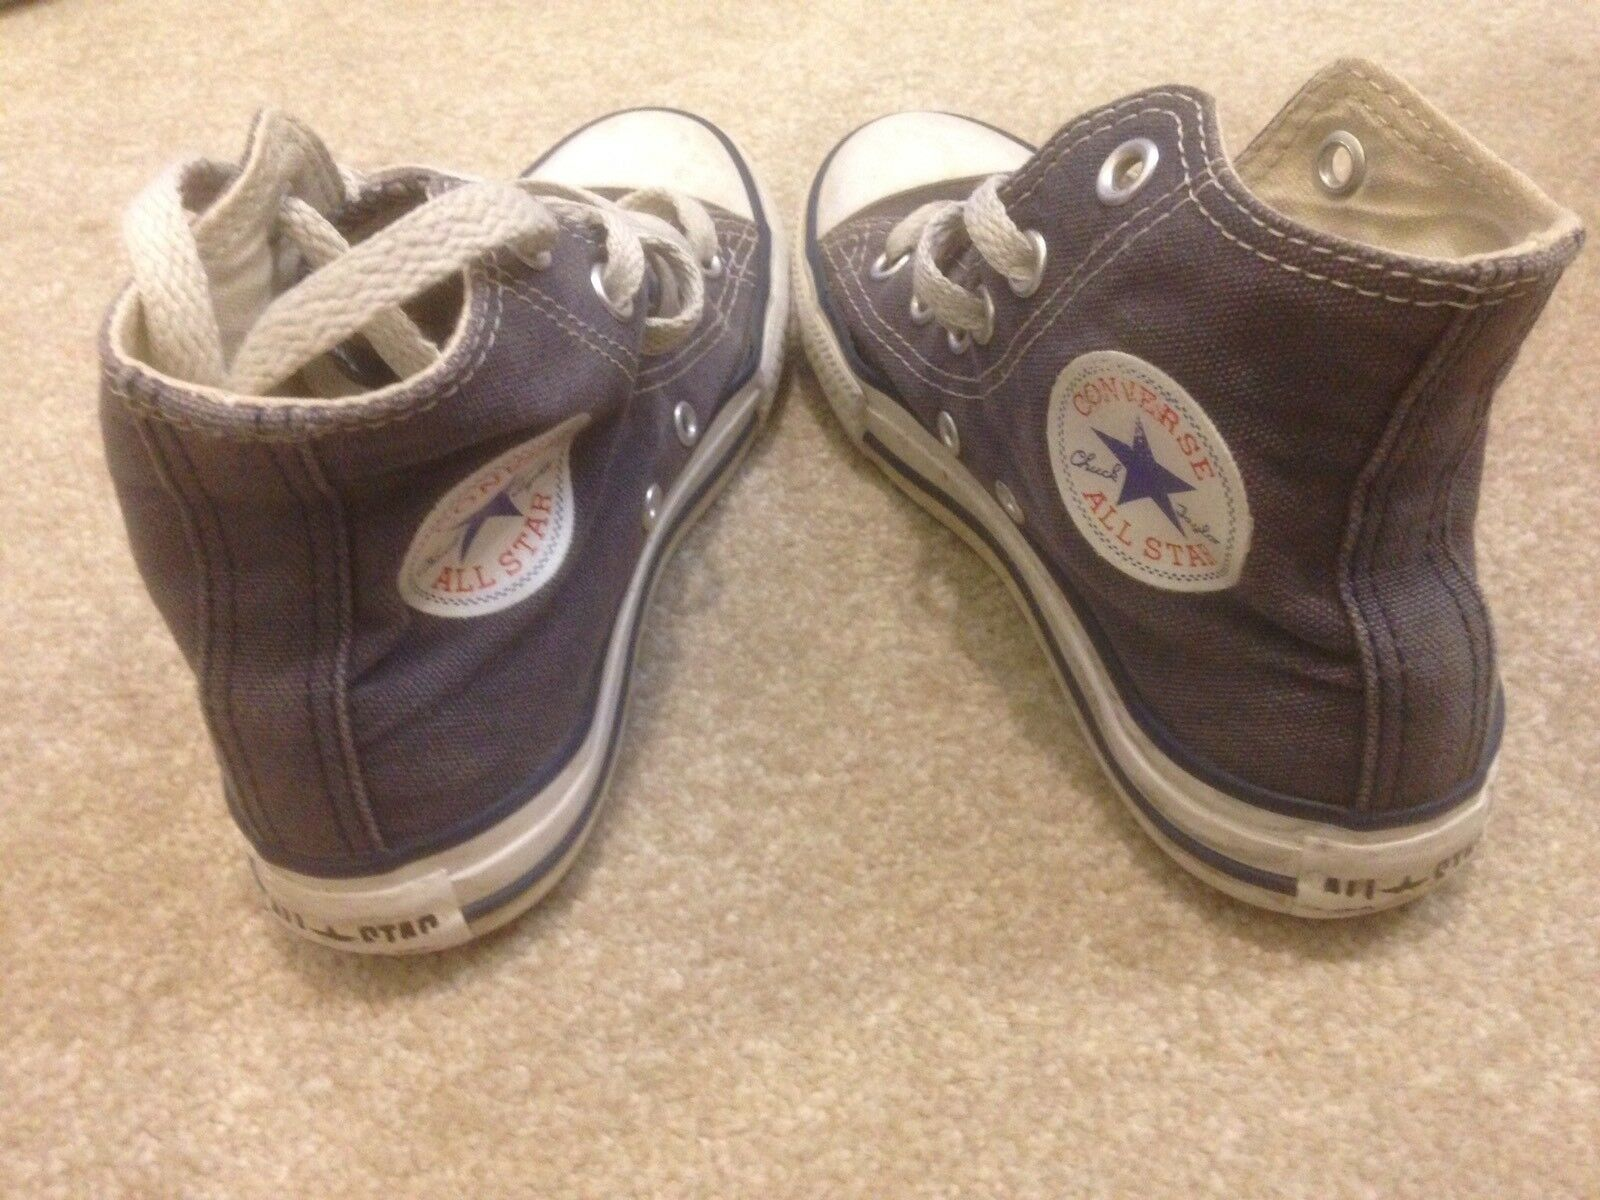 Filles Bleu/Gris Converse All Star High Taille Tops Cheville Taille High UK 1.5 9fb3f9